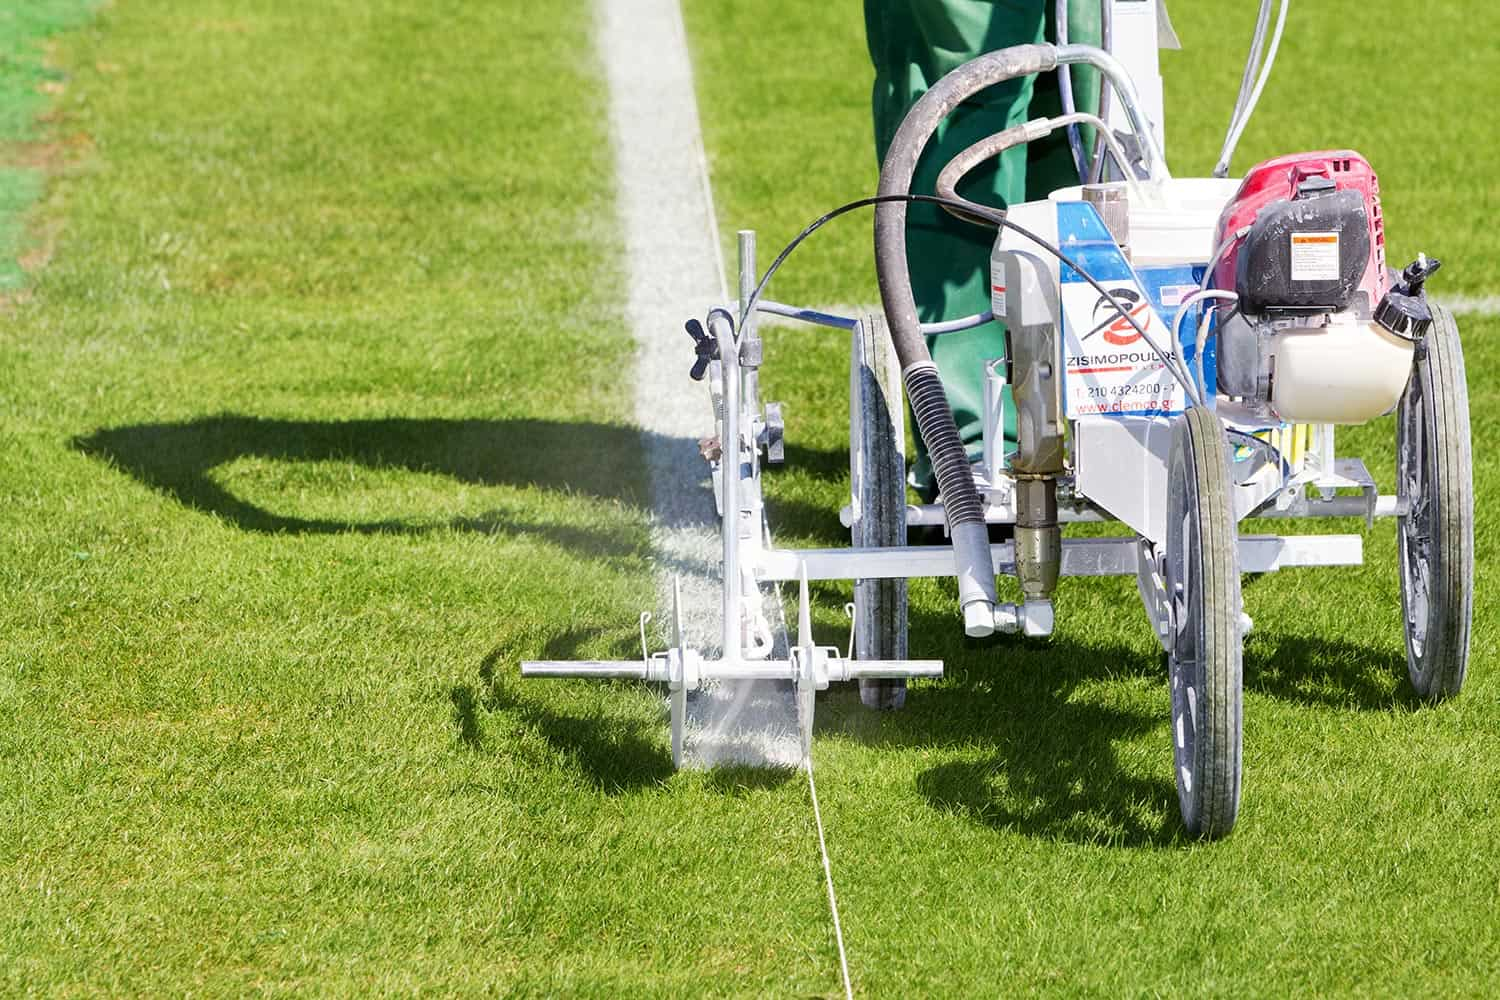 Painting lines in the football field